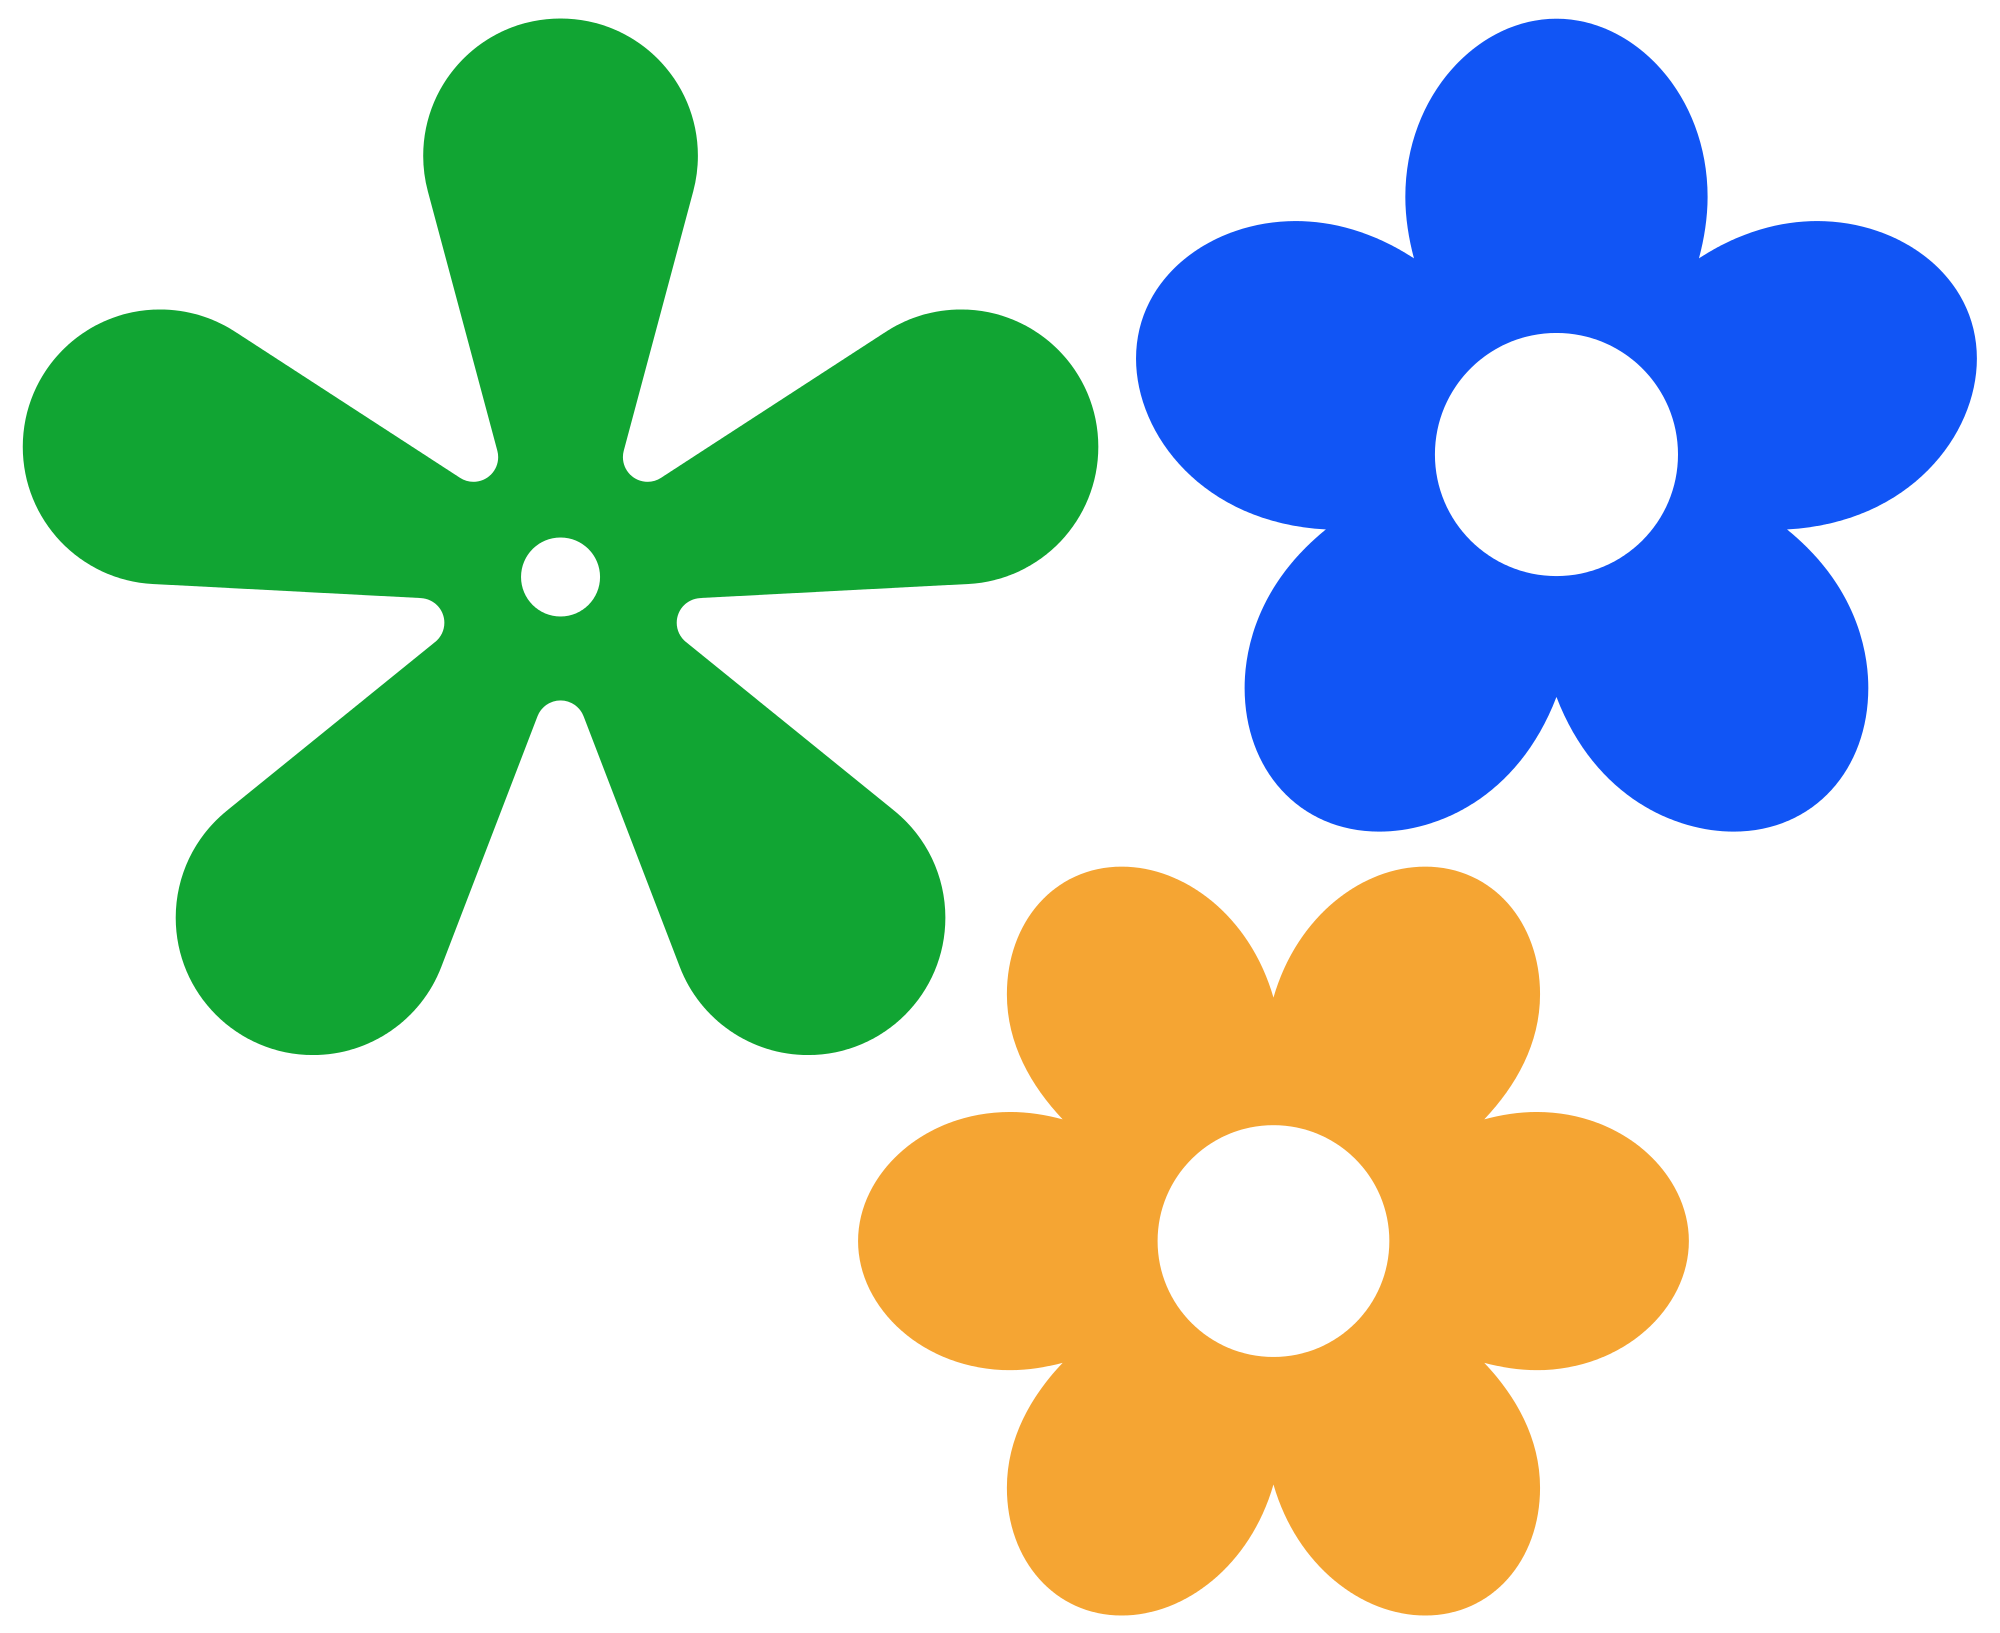 Retro flower clipart clip art royalty free download File:Retro-flower-icon-5petals.svg - Wikimedia Commons clip art royalty free download